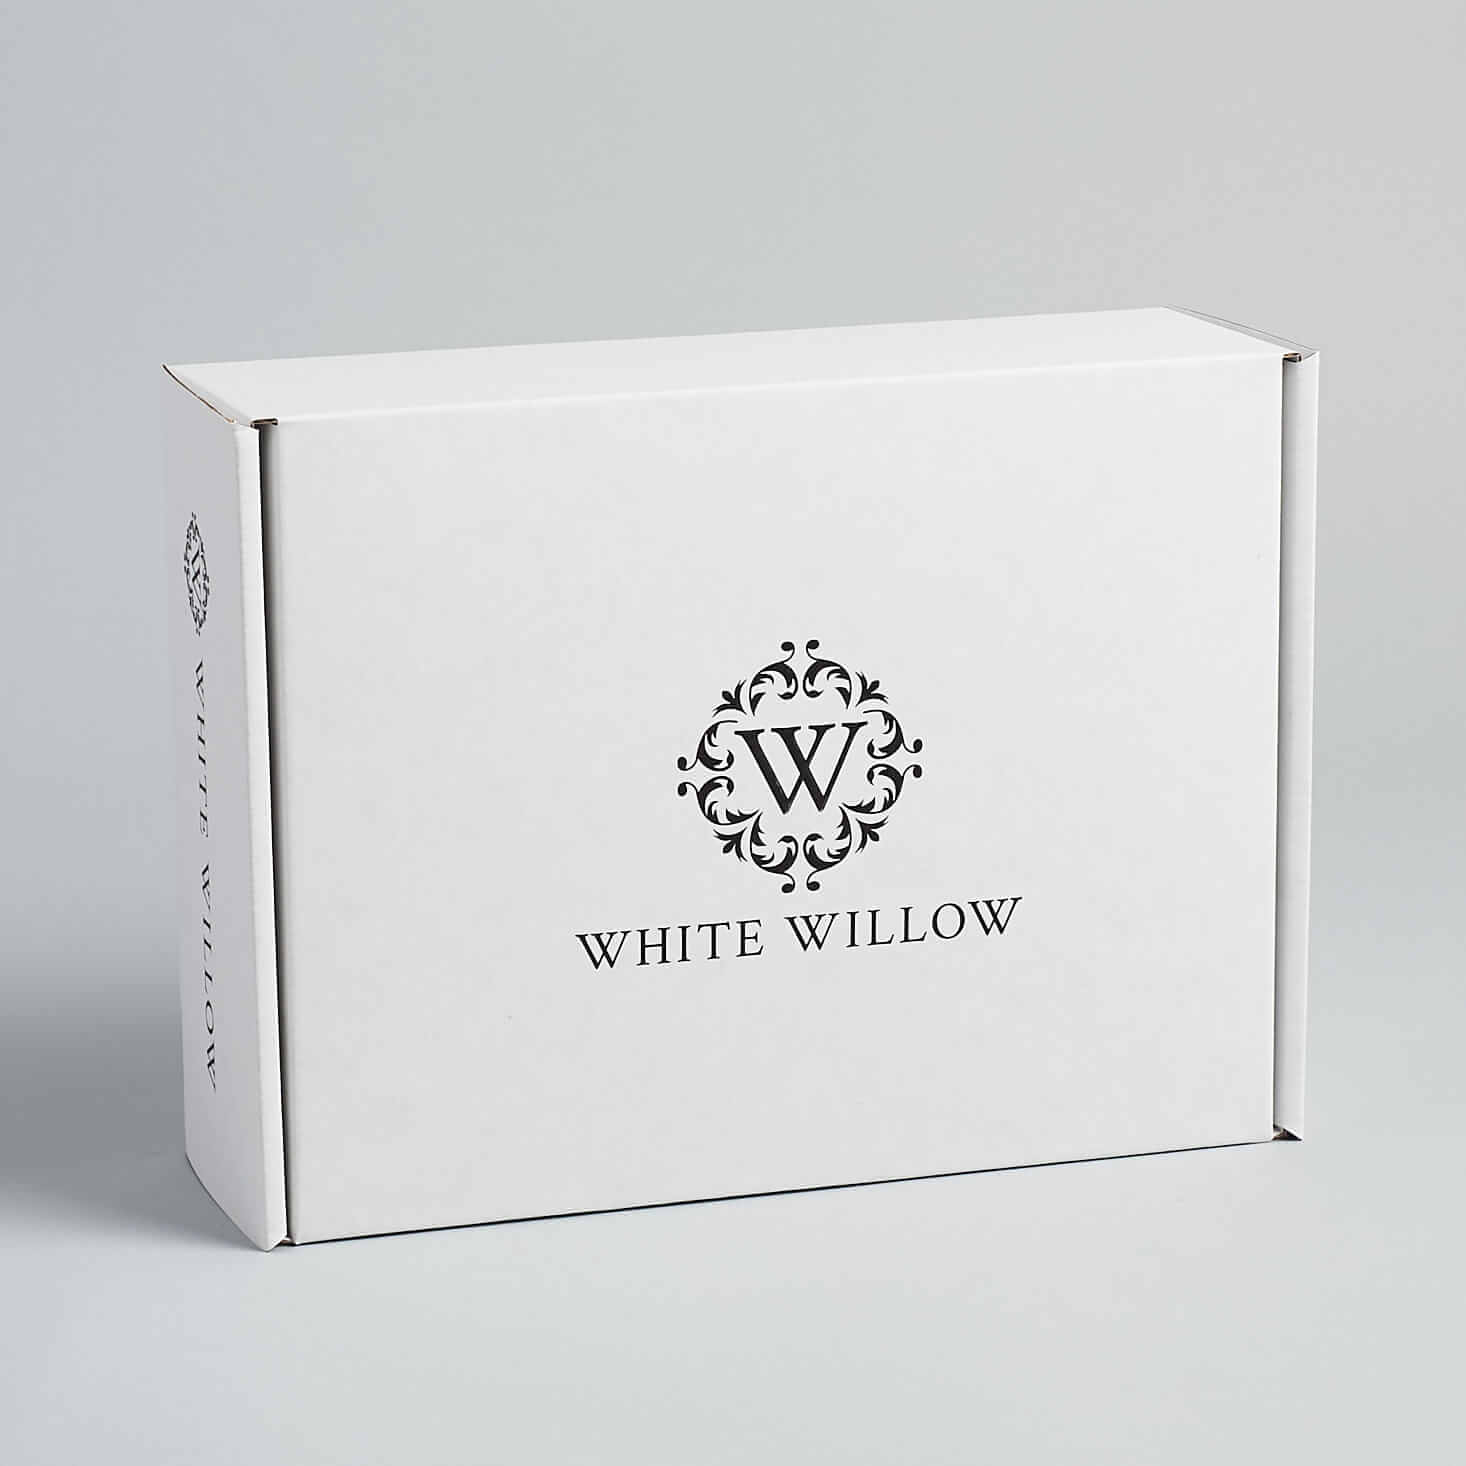 White-Willow packhelp minimalismo